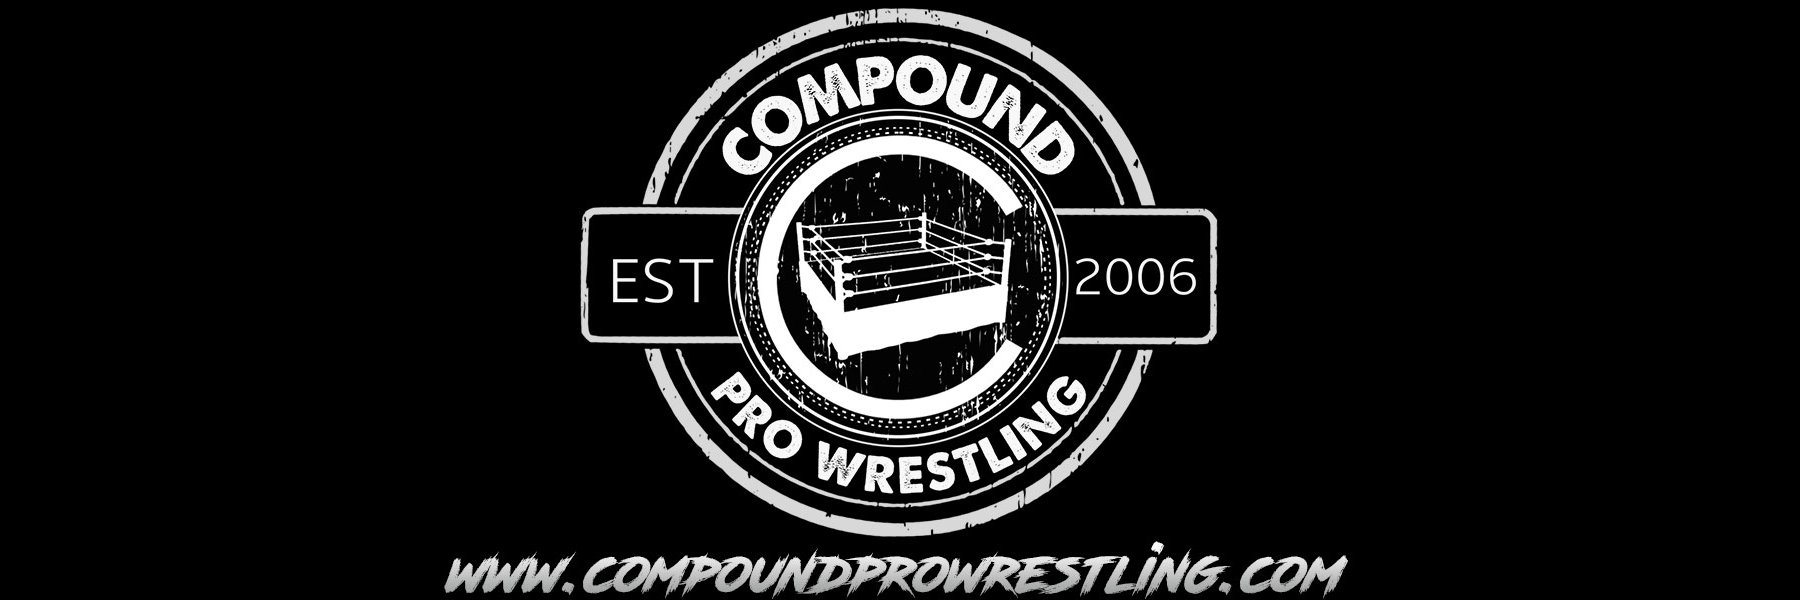 Compound Pro Wrestling | Don't Sleep On Compound | Watch Online Videos Free for 2 weeks